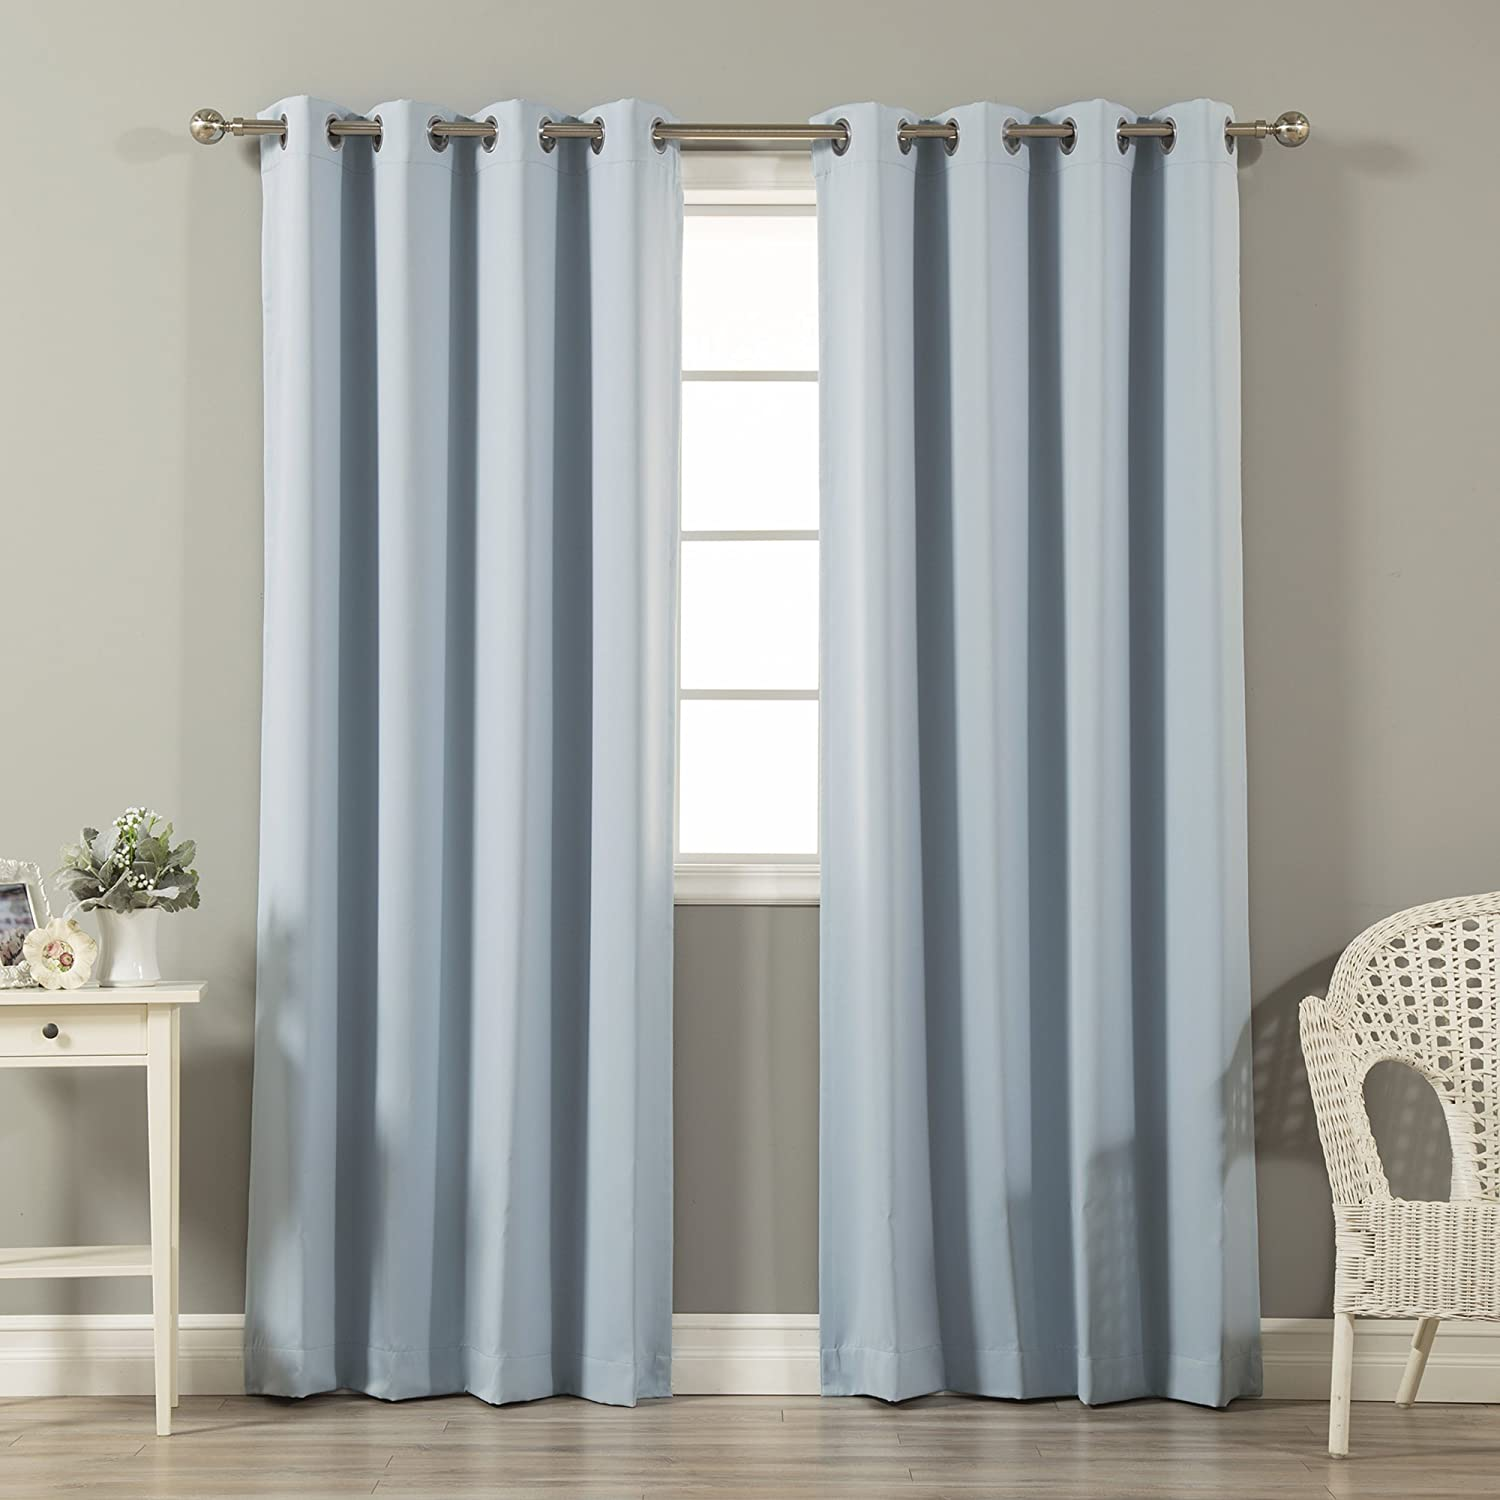 """Best Home Fashion Thermal Insulated Blackout Curtains - Stainless Steel Nickel Grommet Top - Sky. Blue - 52"""" W X 96"""" L - (Set of 2 Panels) …"""